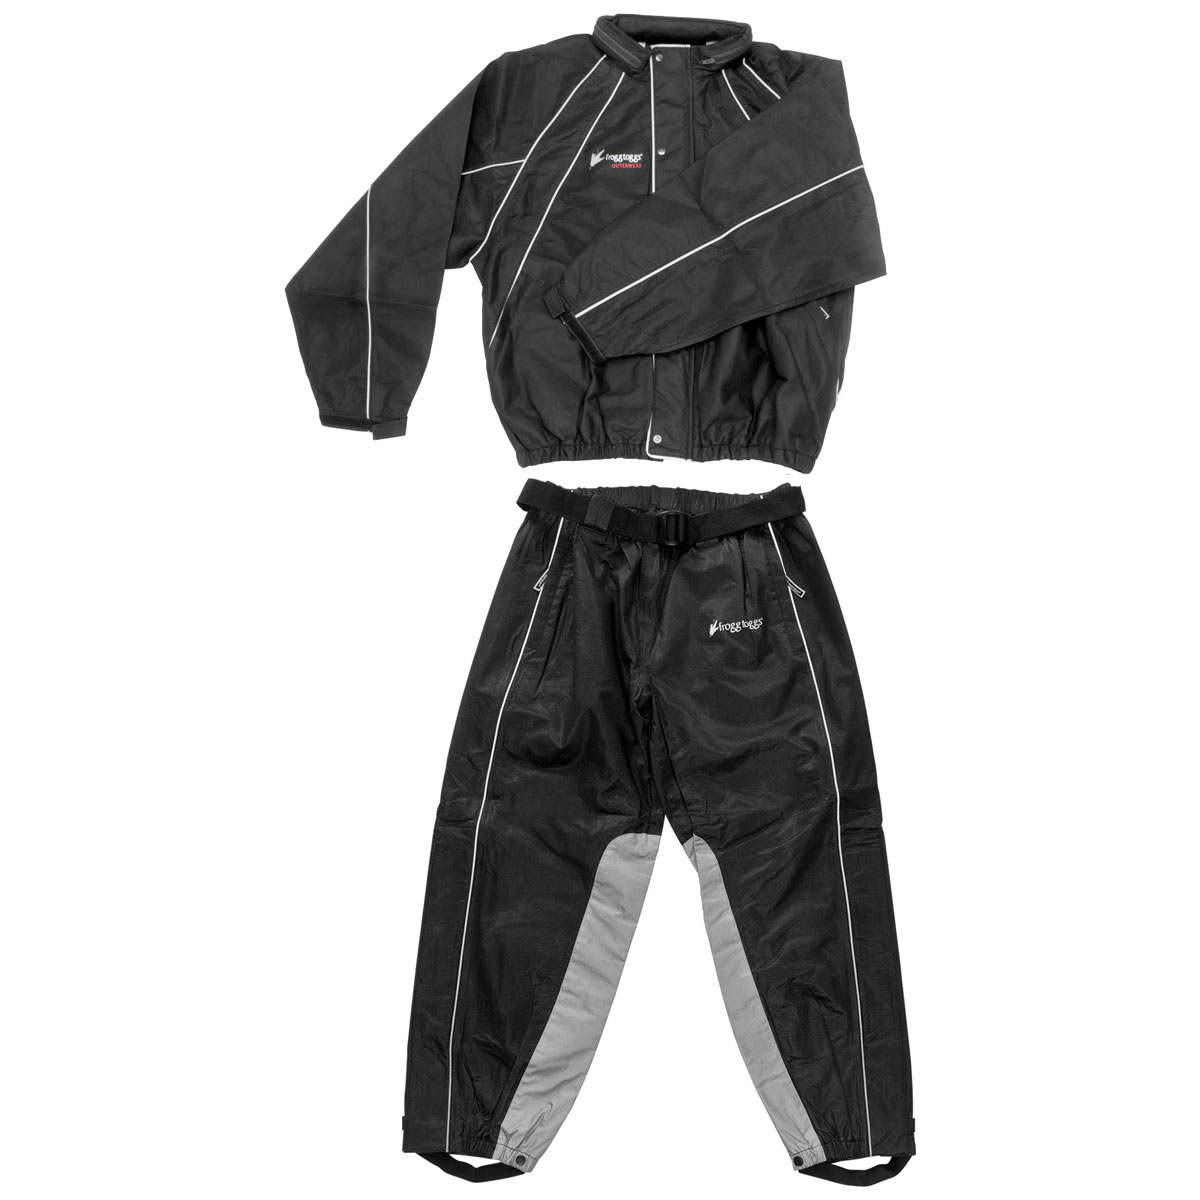 Frogg Toggs Hogg Togg Black Rain Suit with Heat Resistant Leg Liners